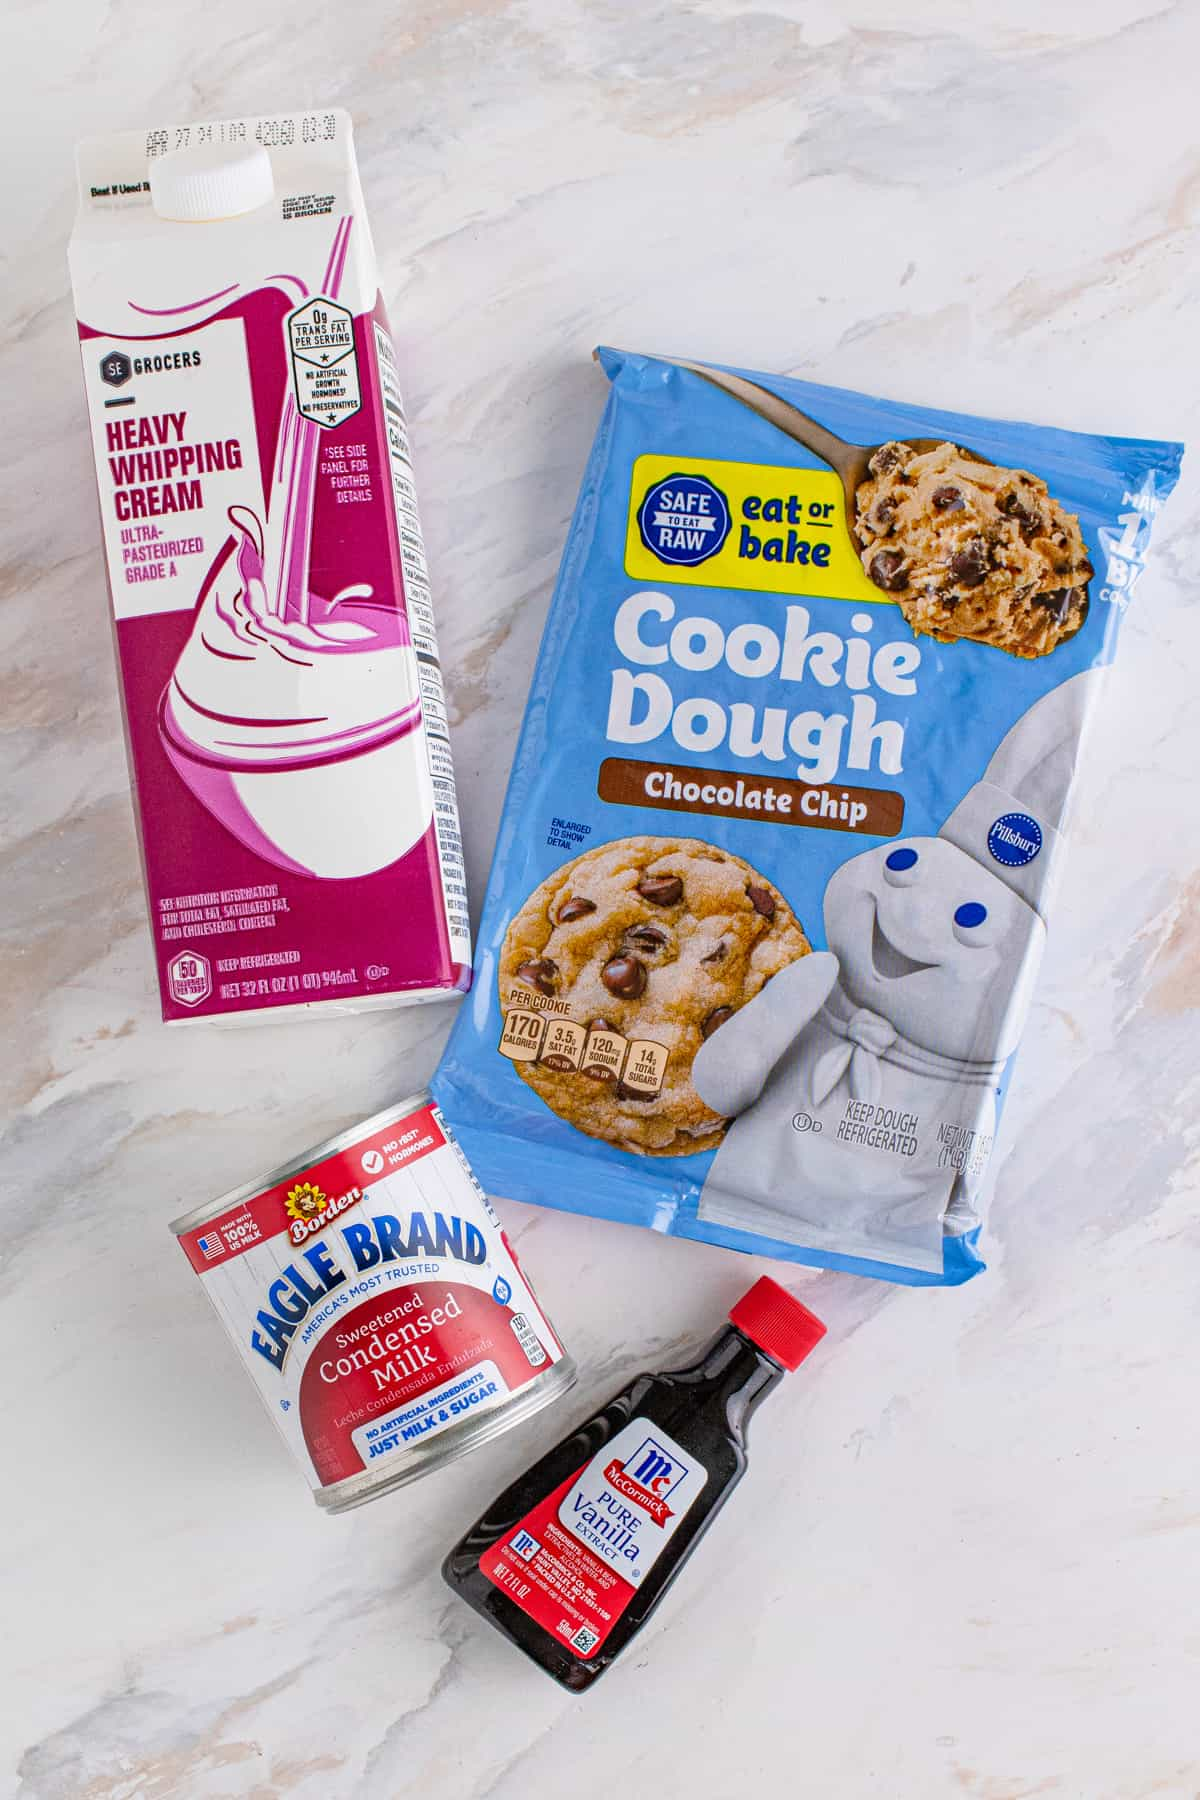 Ingredients needed to make Chocolate Chip Cookie Dough Ice Cream